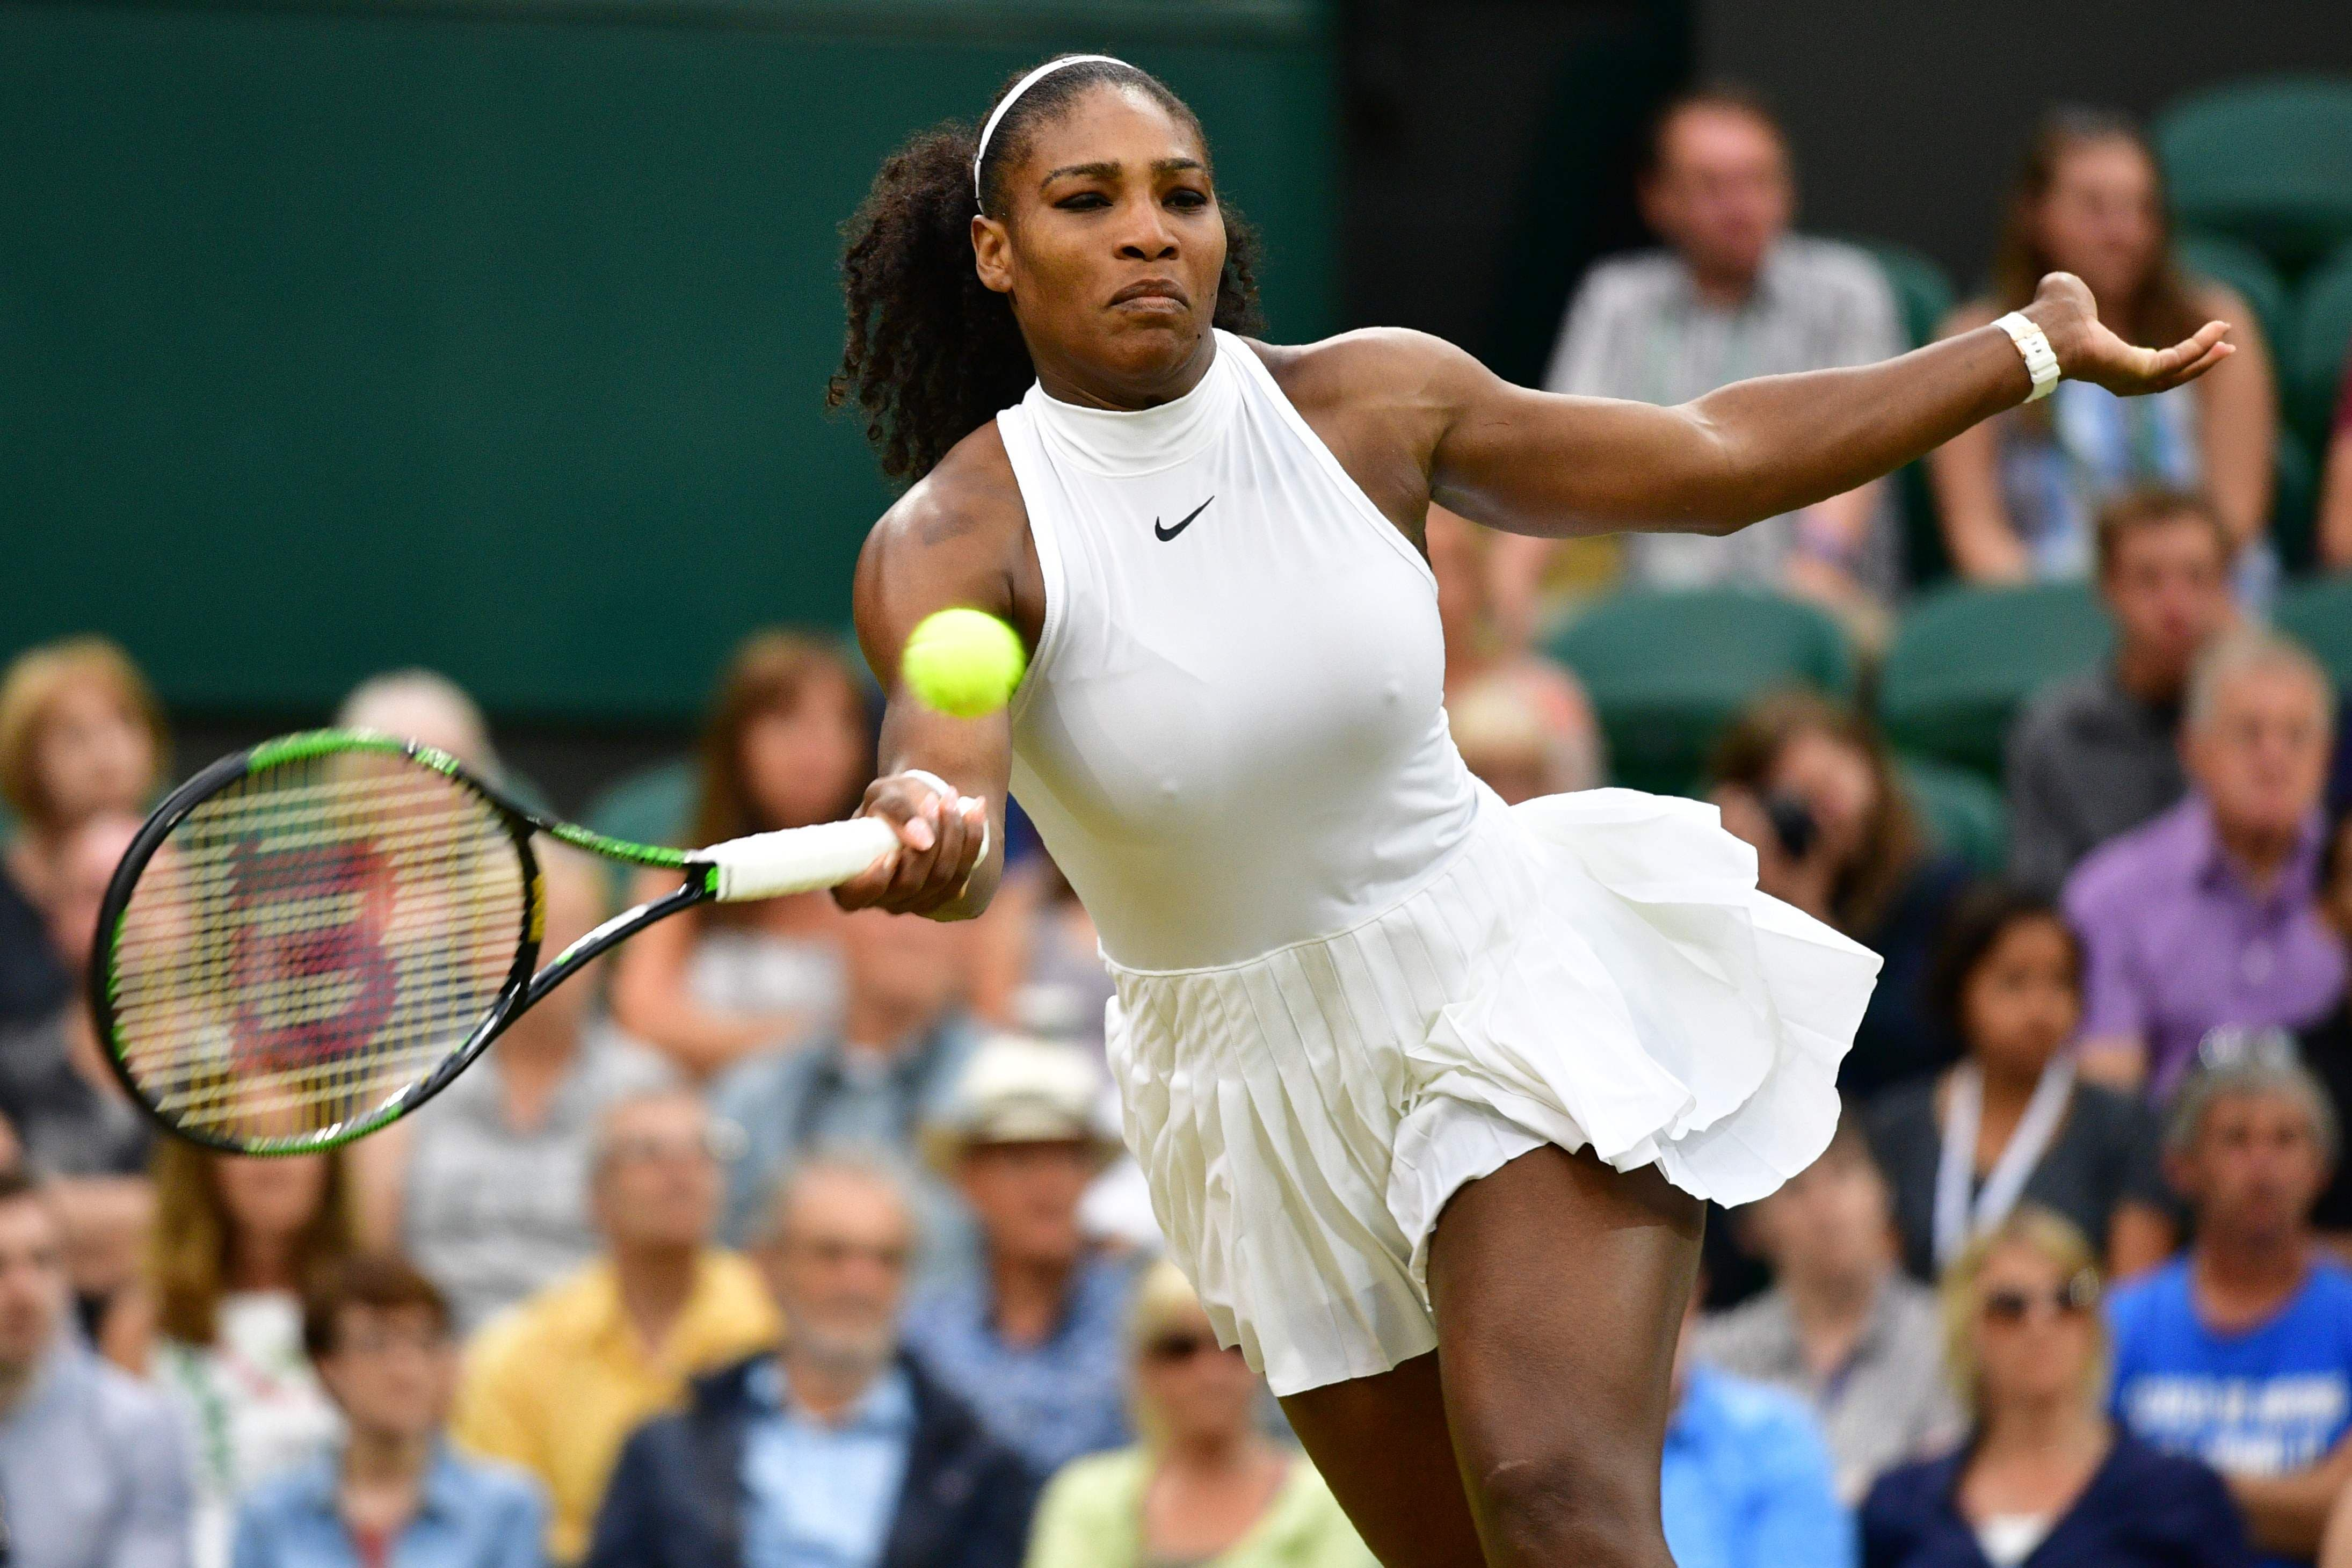 US player Serena Williams returns to Russia's Svetlana Kuznetsova during their women's singles fourth round match on the eighth day of the 2016 Wimbledon Championships at The All England Lawn Tennis Club in Wimbledon, southwest London, on July 4, 2016. RESTRICTED TO EDITORIAL USE  / AFP / LEON NEAL / RESTRICTED TO EDITORIAL USE